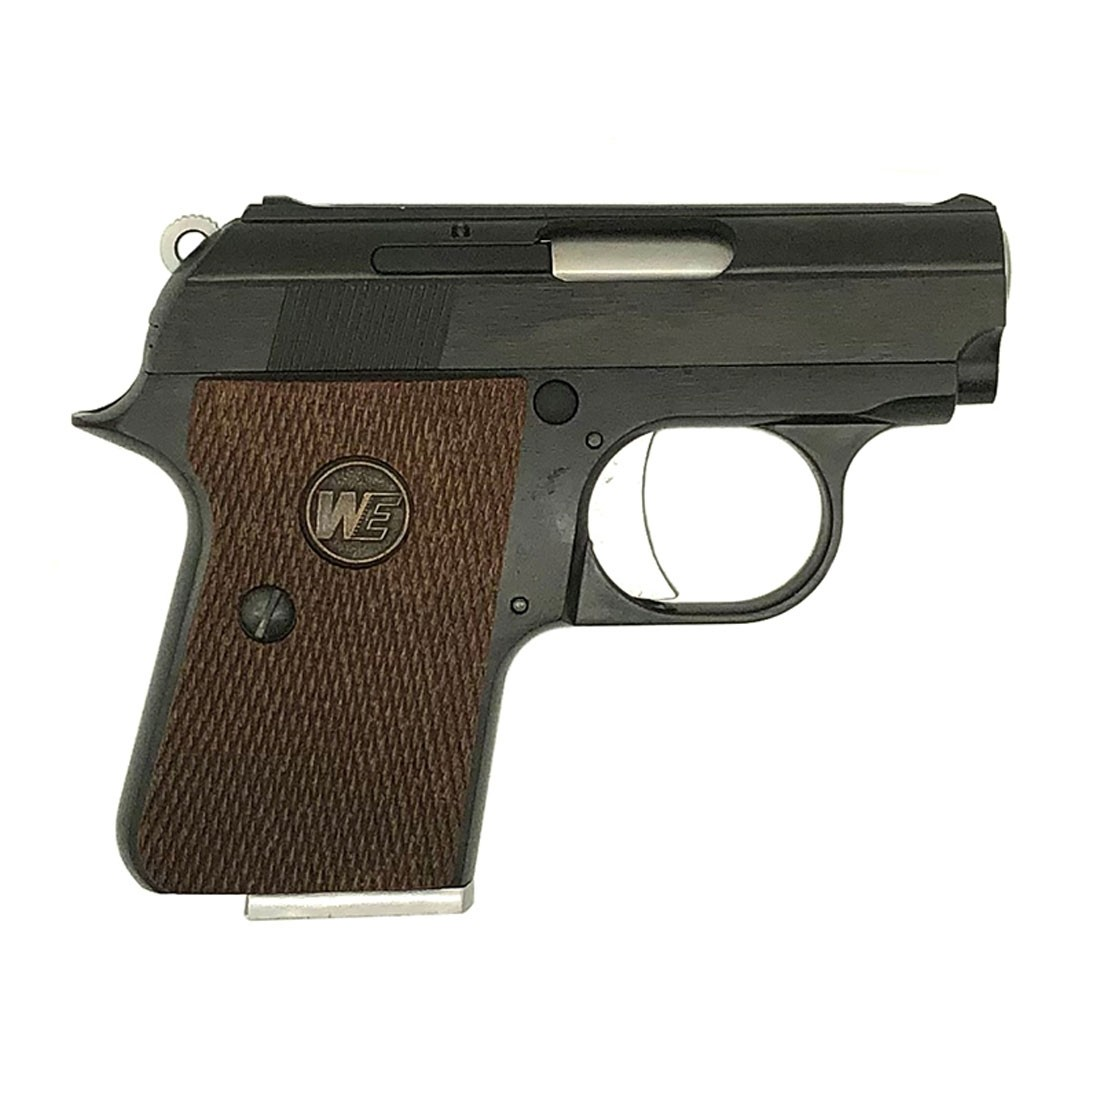 WE Colt 25 Auto CT25 Full Metal Gas Blowback Airsoft Pistol